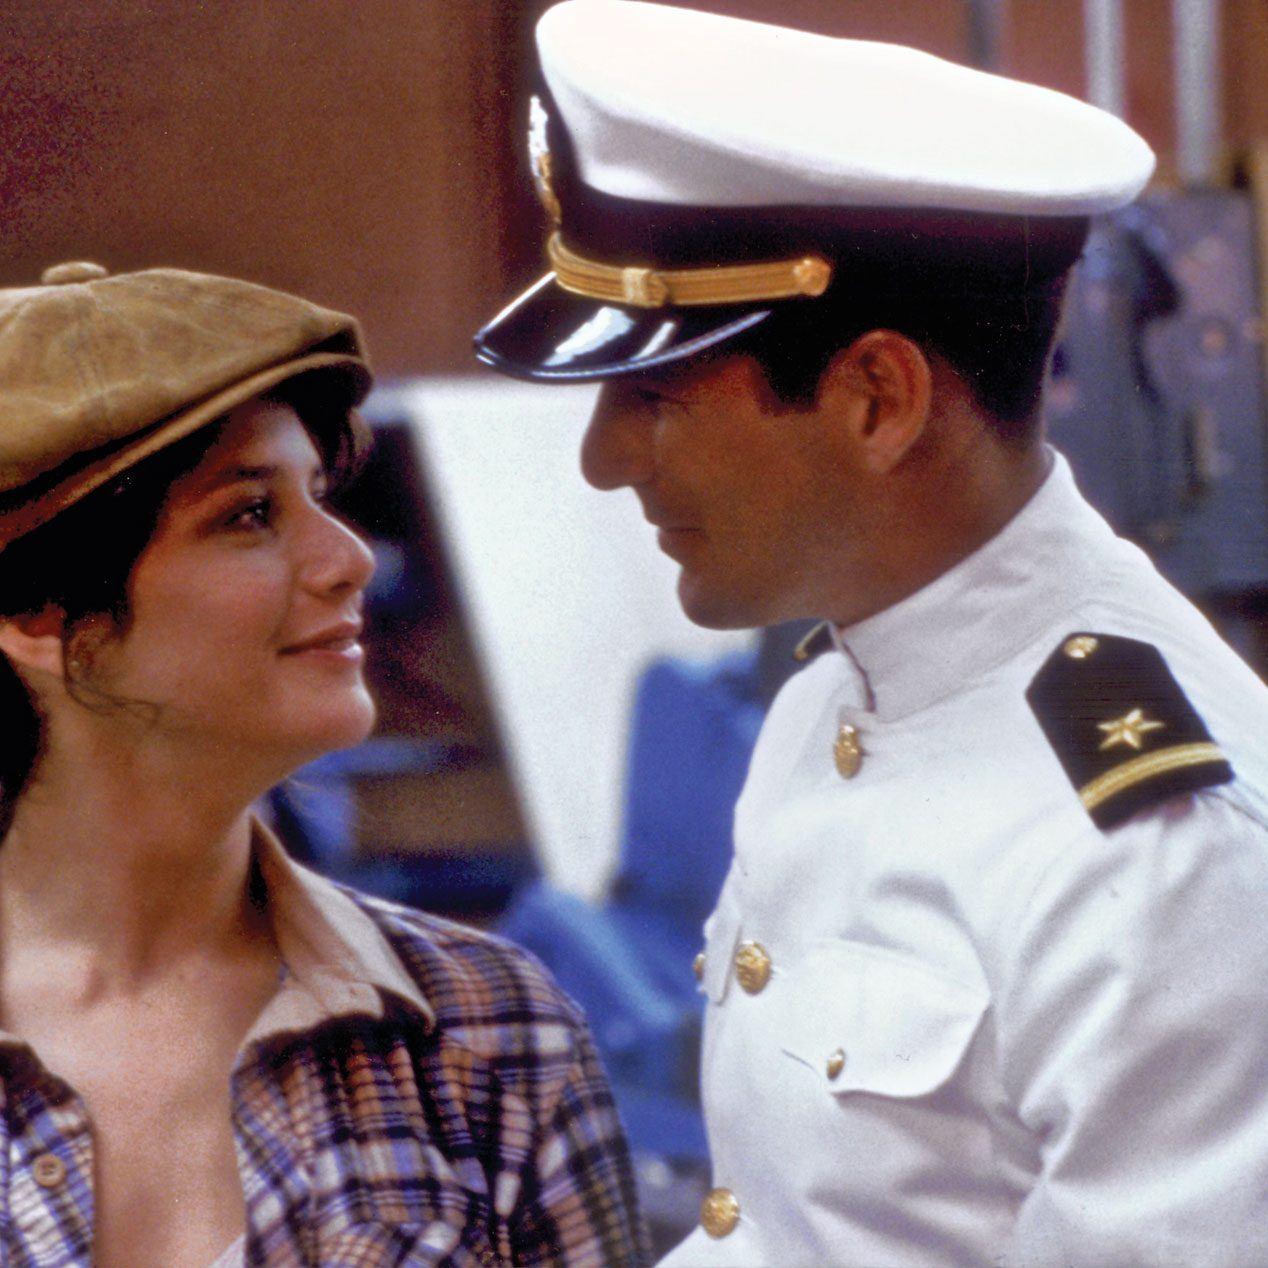 Debra Winger Richard Gere An Officer and e1579609557281 20 Things You Didn't Know About Richard Gere